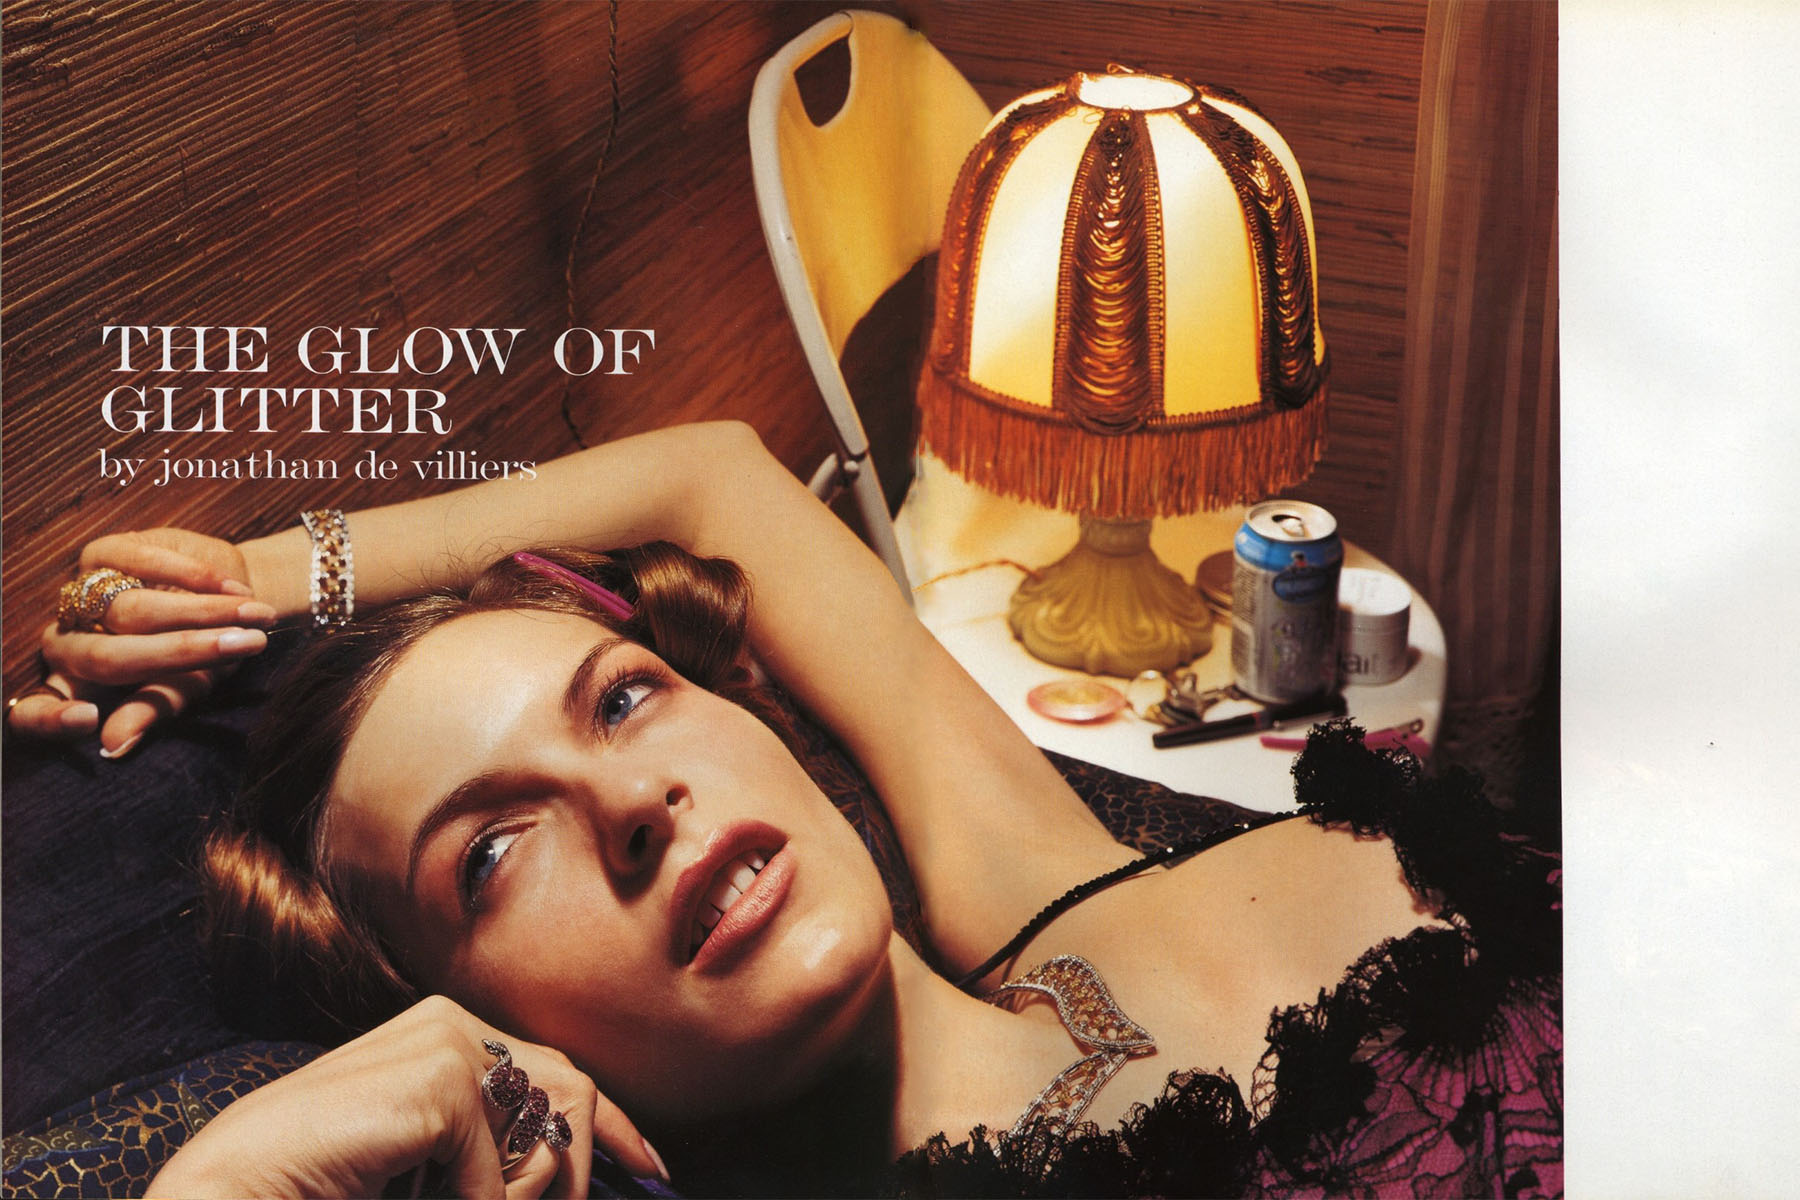 THE GLOW OF GLITTER | PHOTOGRAPHY JONATHAN DE VILLIERS | VOGUE UNIQUE | SUPPLEMENT | VOGUE ITALIA N.625 | SEPTEMBER 2002